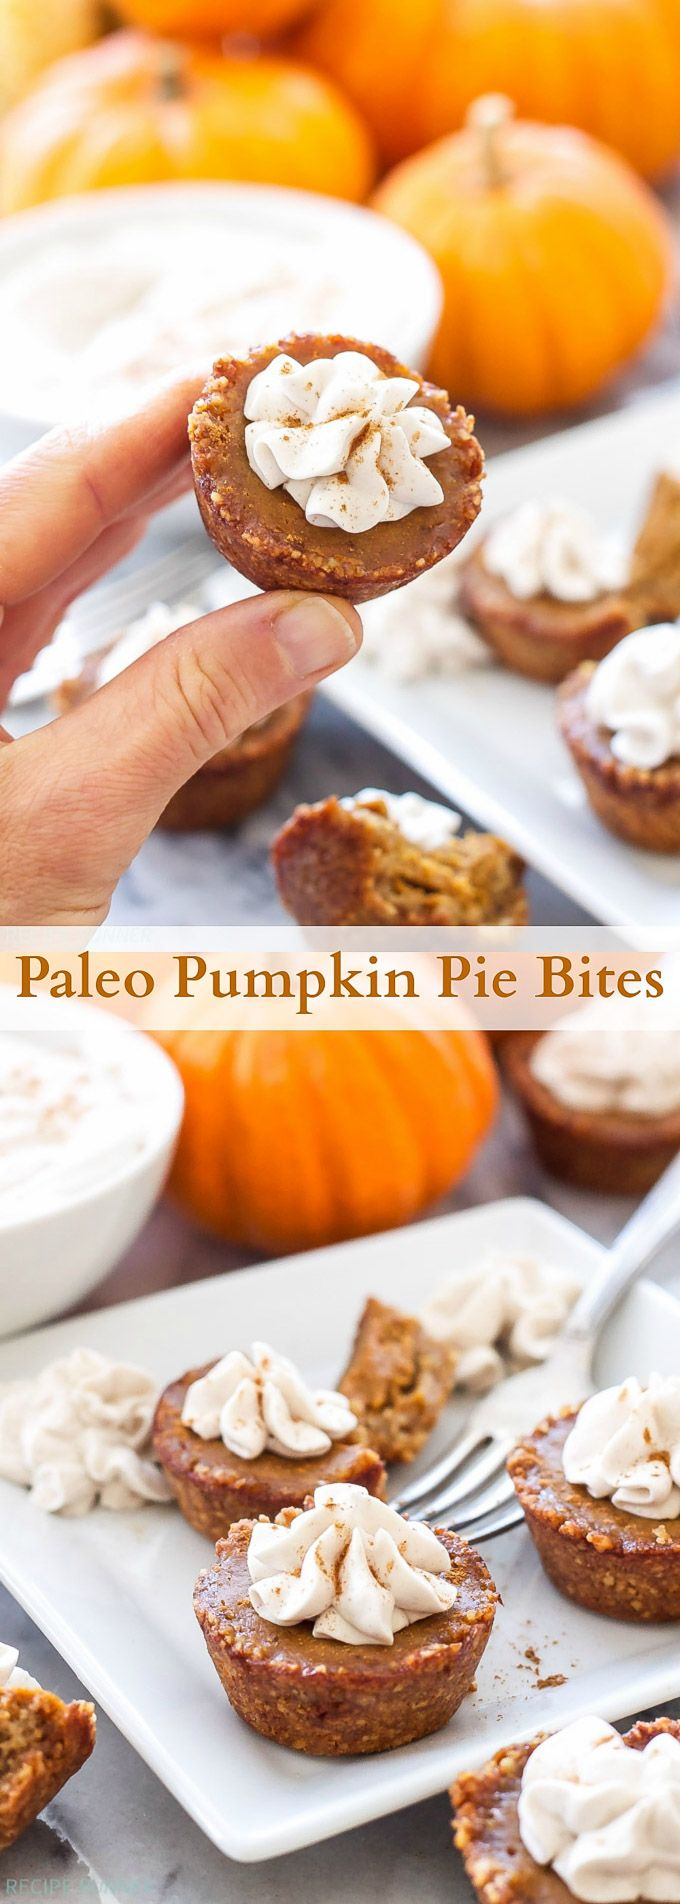 Paleo Pumpkin Pie Bites are the perfect sized dessert to serve after Thanksgiving dinner! Just big enough to satisfy your sweet tooth, plus you don't have to share.